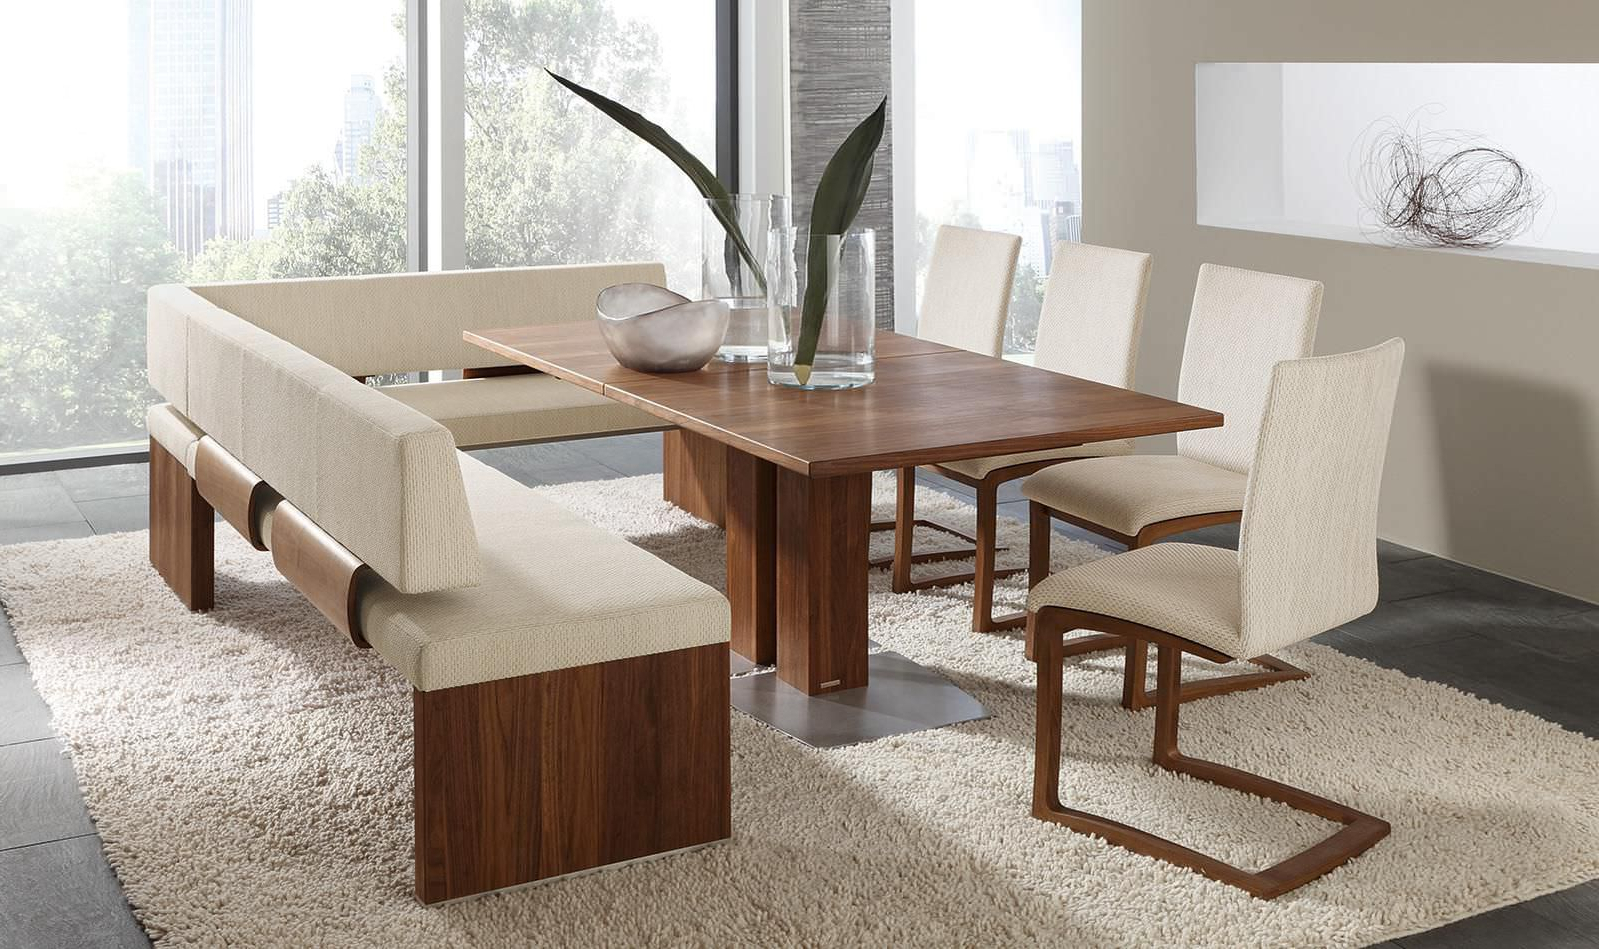 Most Current Contemporary Dining Table / Wooden / Rectangular – Et364 Regarding Contemporary 4 Seating Oblong Dining Tables (View 15 of 25)